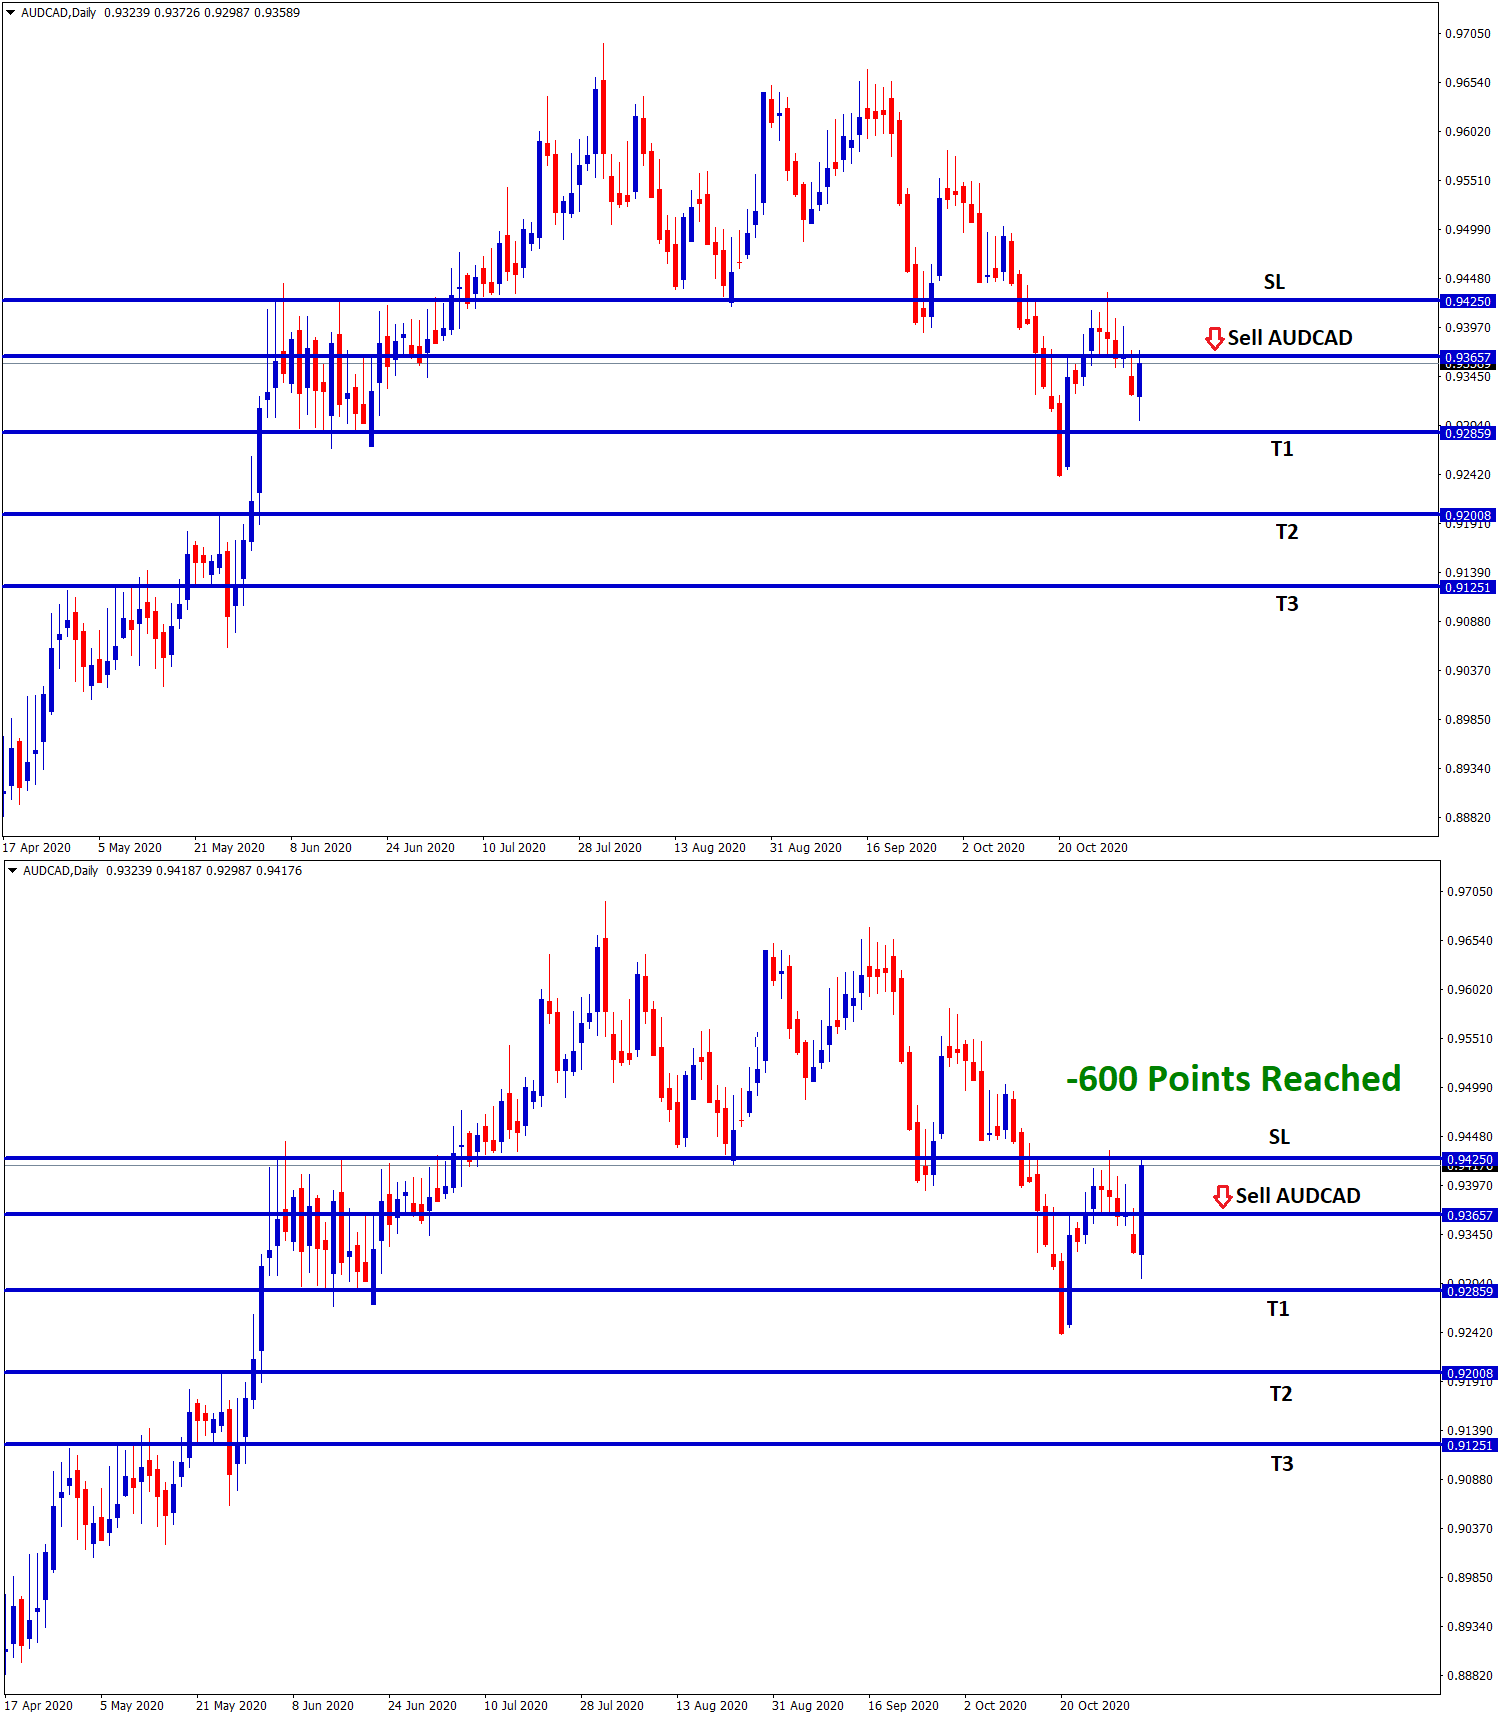 AUDCAD reach 600 points loss in sell